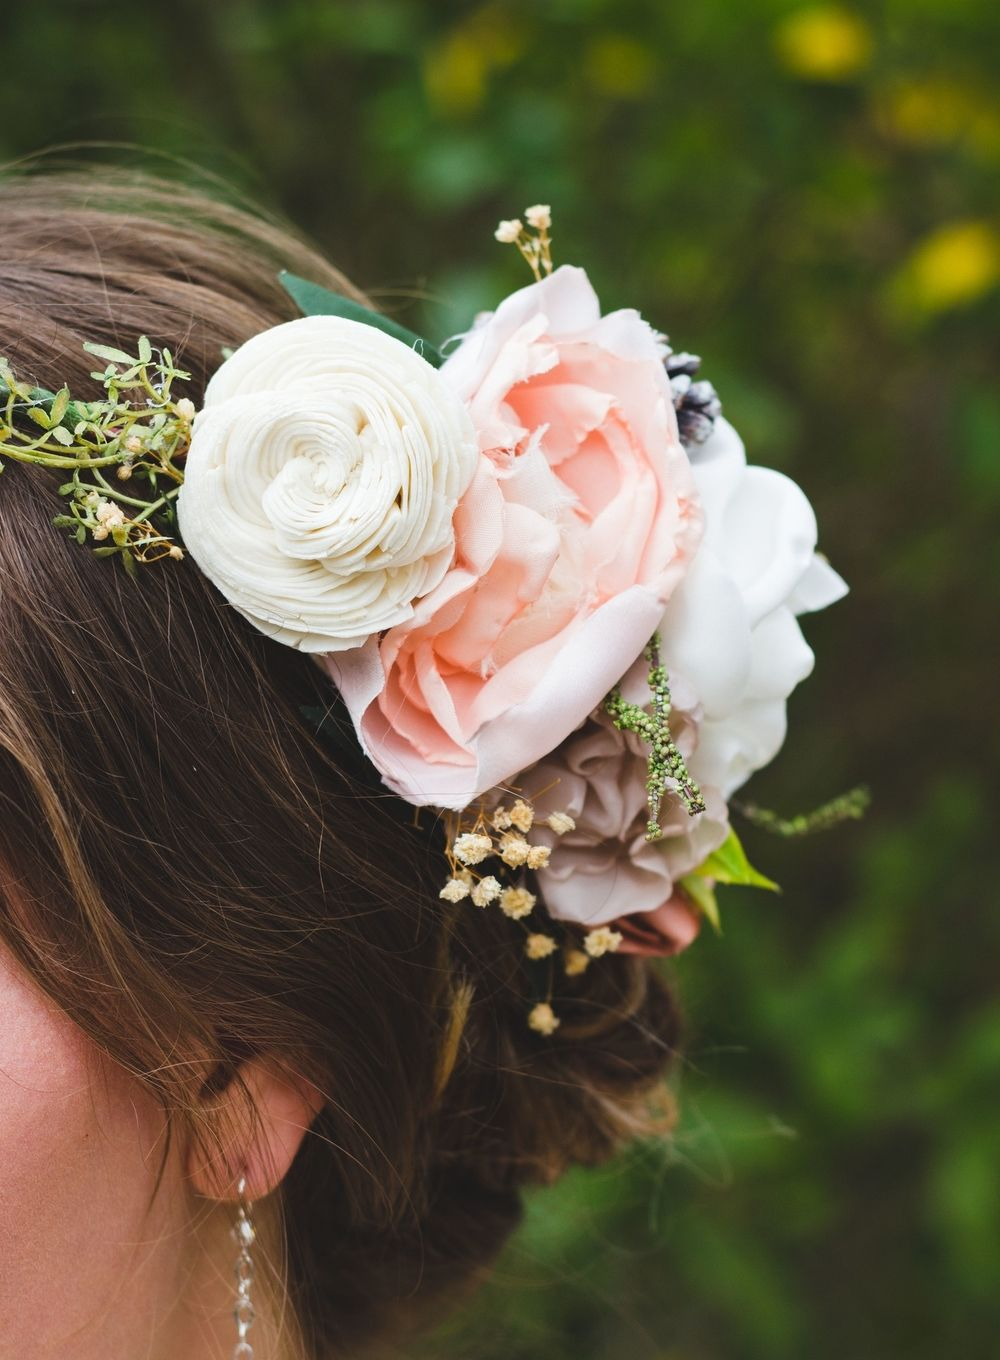 boho fabric flower crown $60 Perfect for spring or garden weddings, boho weddings, bridesmaid gifts, keepsake gifts. This wedding flower alternative lasts forever and will make a beautiful family heirloom. Bridesmaid and bridal hair ideas from Ragga Wedding